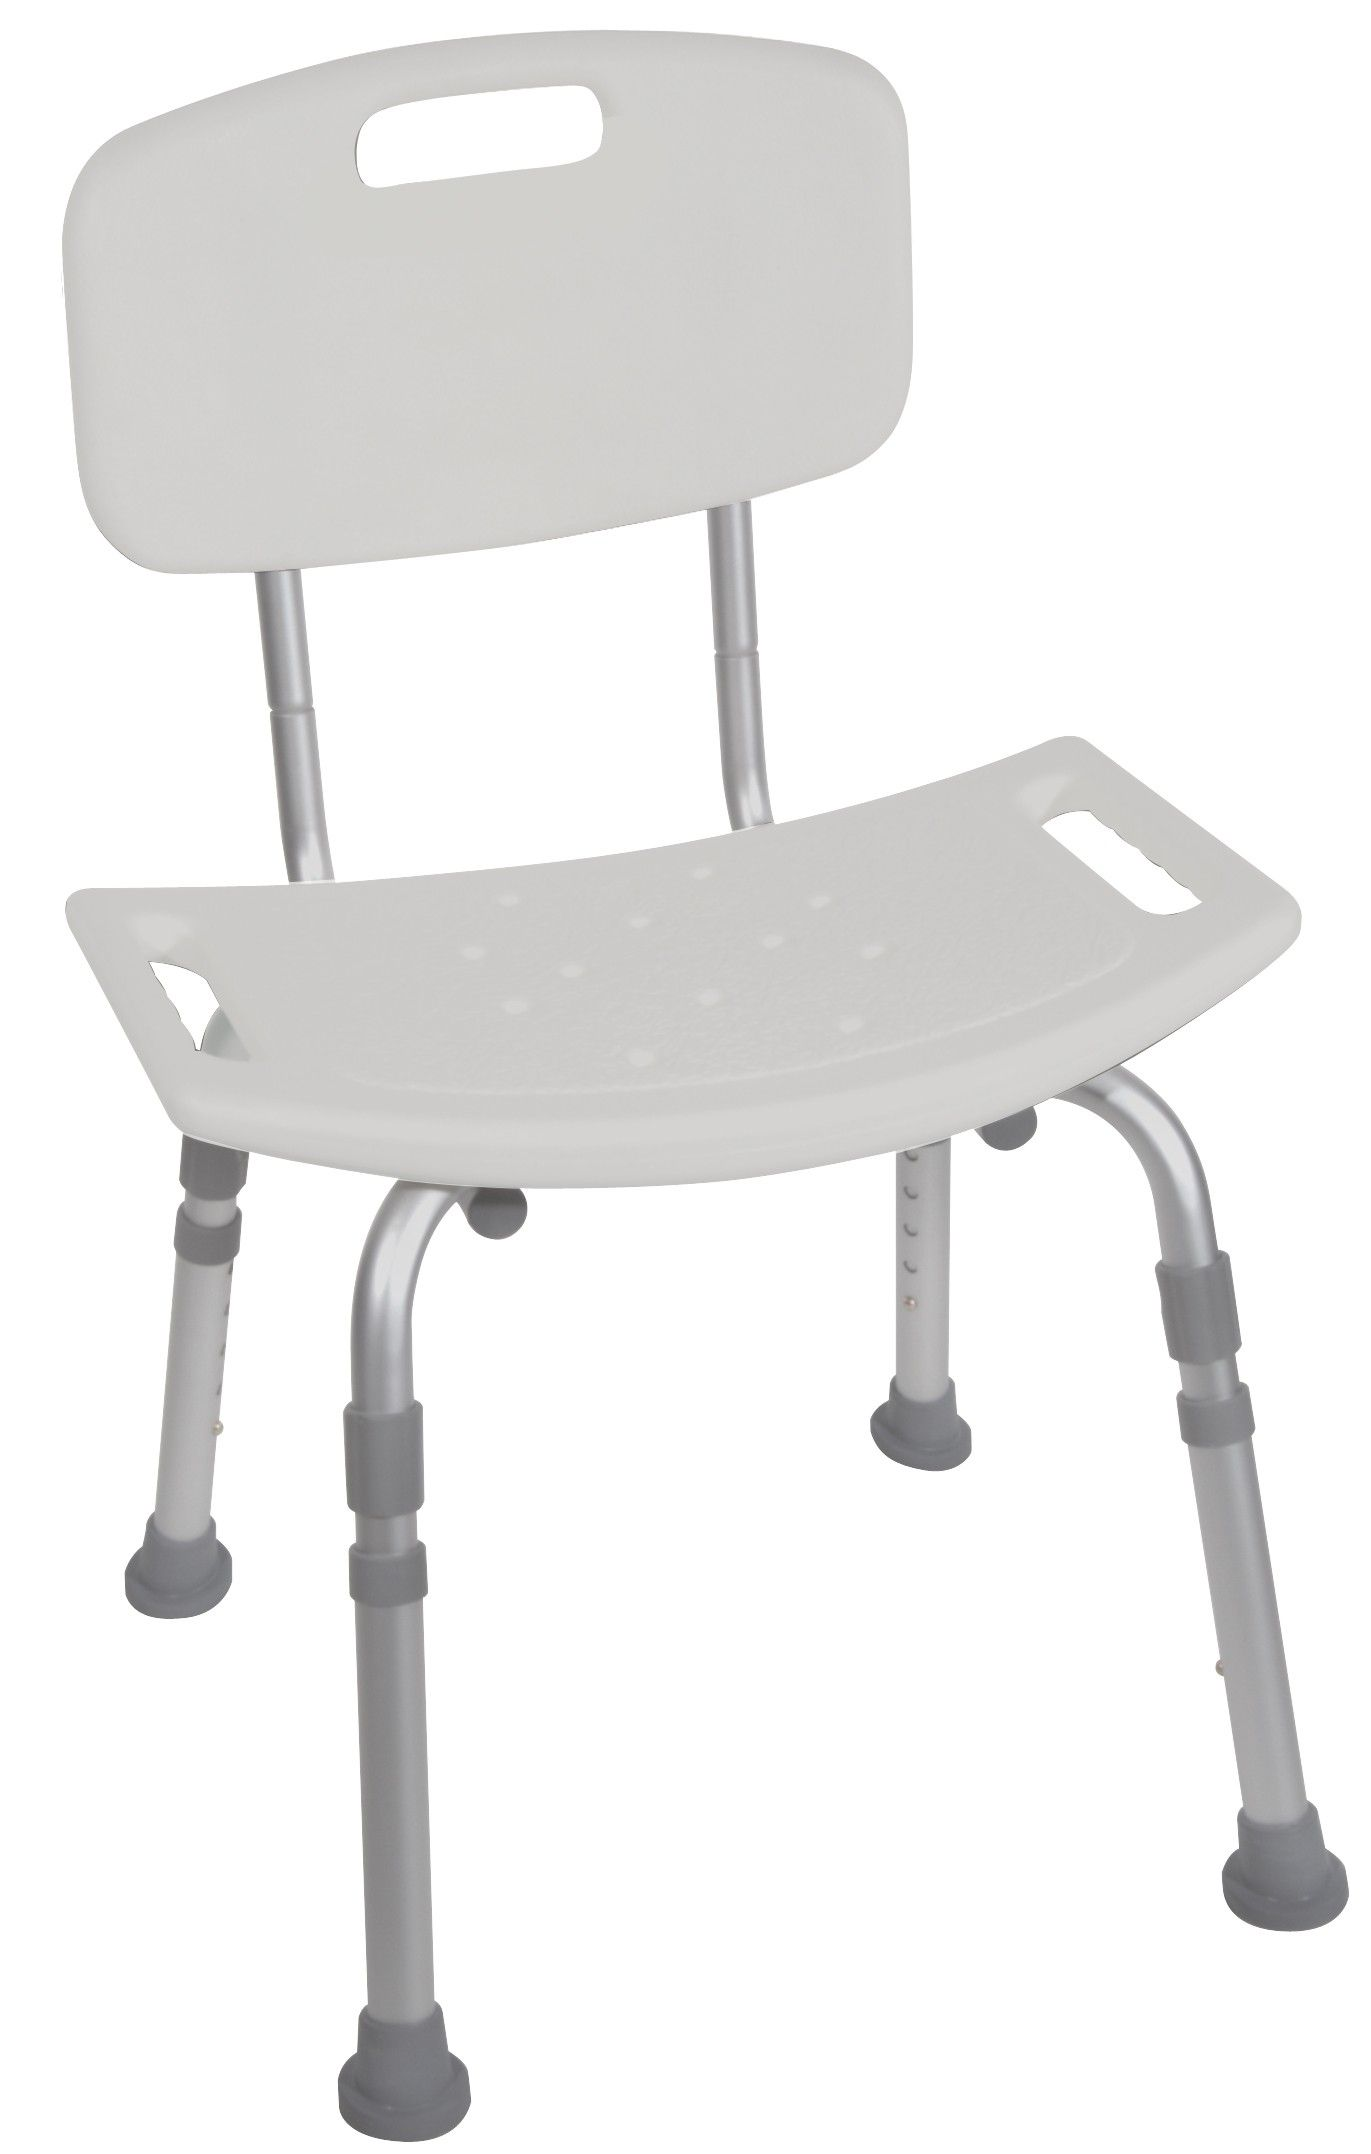 Gappo Wall Mounted Shower Seats Alumimum Alloy Disabled Elderly Bath Shower Seat Bathroom Chair Seat Stool Bench Year-End Bargain Sale Wall Mounted Shower Seats Bathroom Fixtures